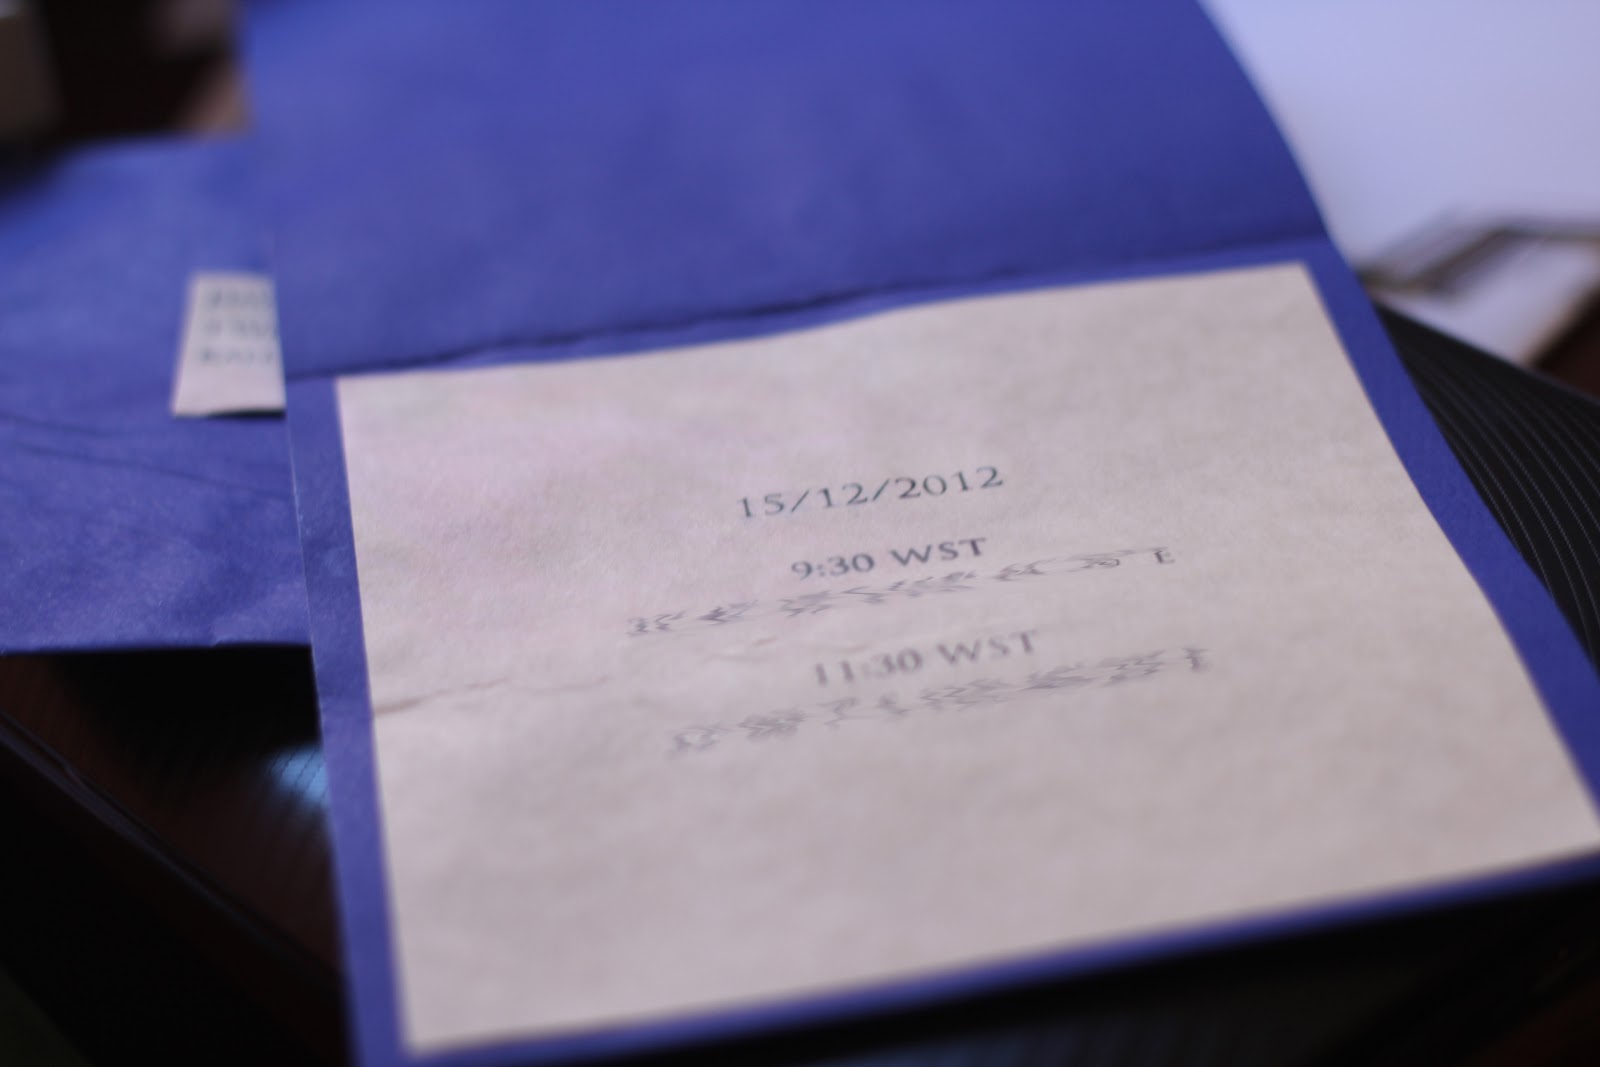 doctor who wedding invitations tardis blue envelops and inside there